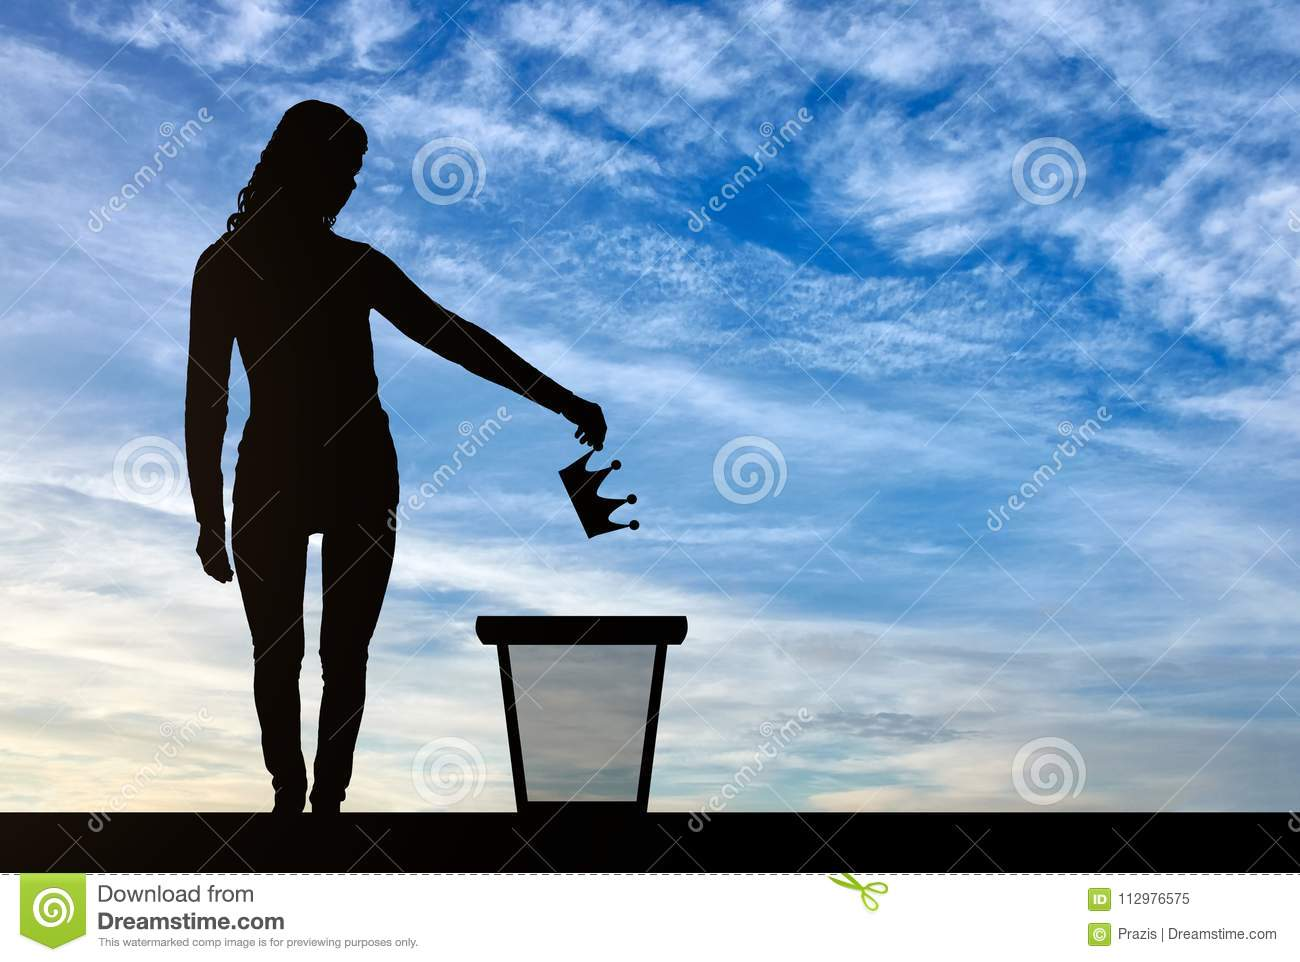 Silhouette of a woman throwing a crown in a garbage bin